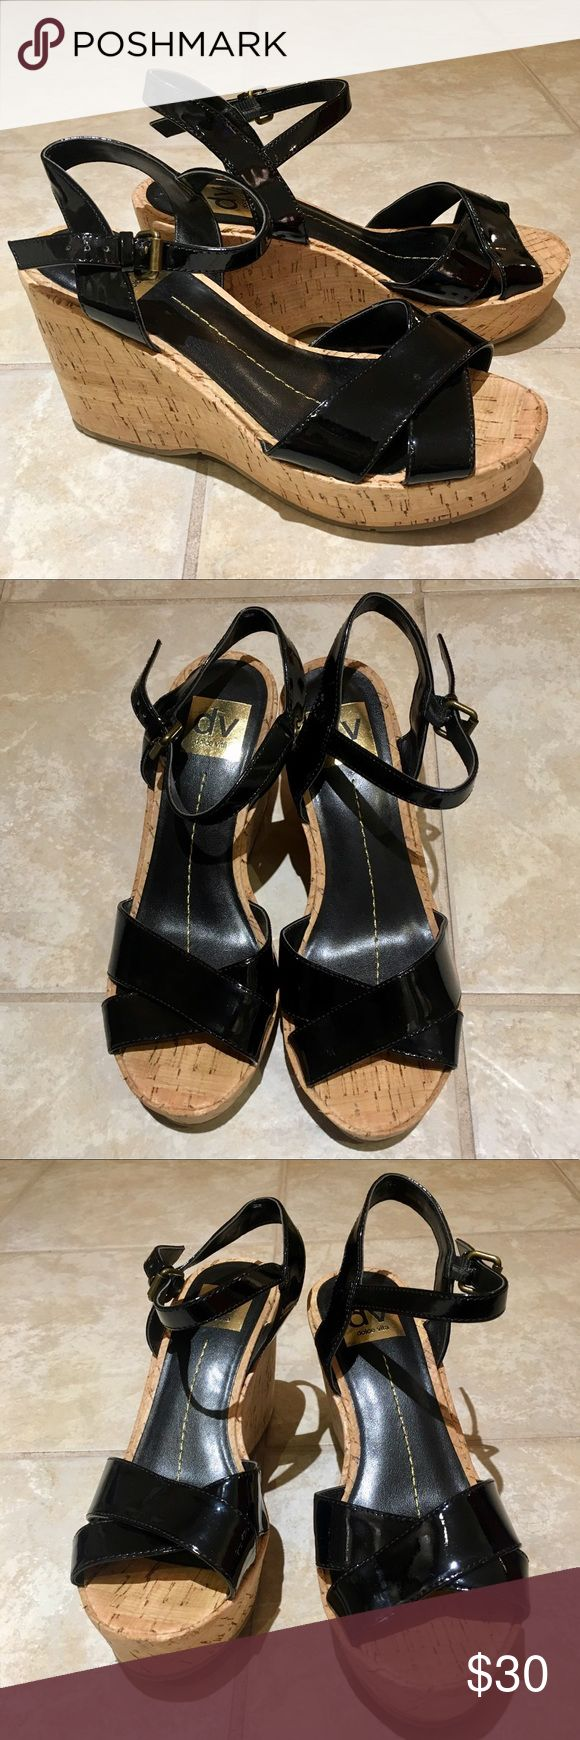 """Dolce Vita Black Platform Wedge Cork Sandals 6 Dolce Vita Black Platform Wedge Cork Sandals size 6. 1.25"""" Platform, 3.5"""" heel. They are in excellent condition! Dolce Vita Shoes Wedges"""